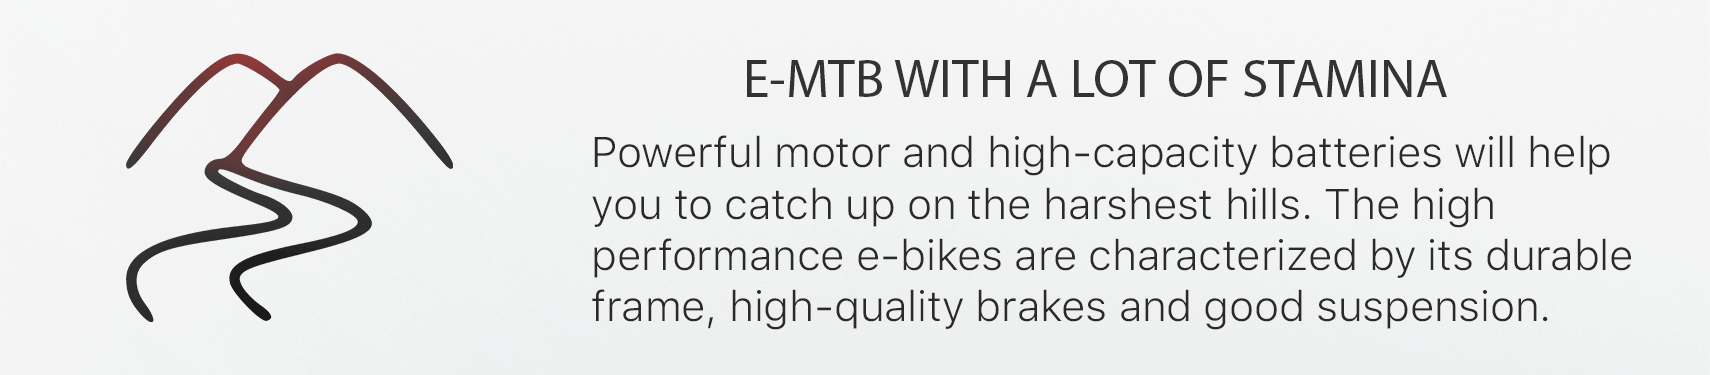 E-MTB WITH A LOT OF STAMIPowerful motor and high-capacity batteries will help  you to catch up on the harshest hills. The high  performance e-bikes are characterized by its durable  frame, high-quality brakes and good suspension.